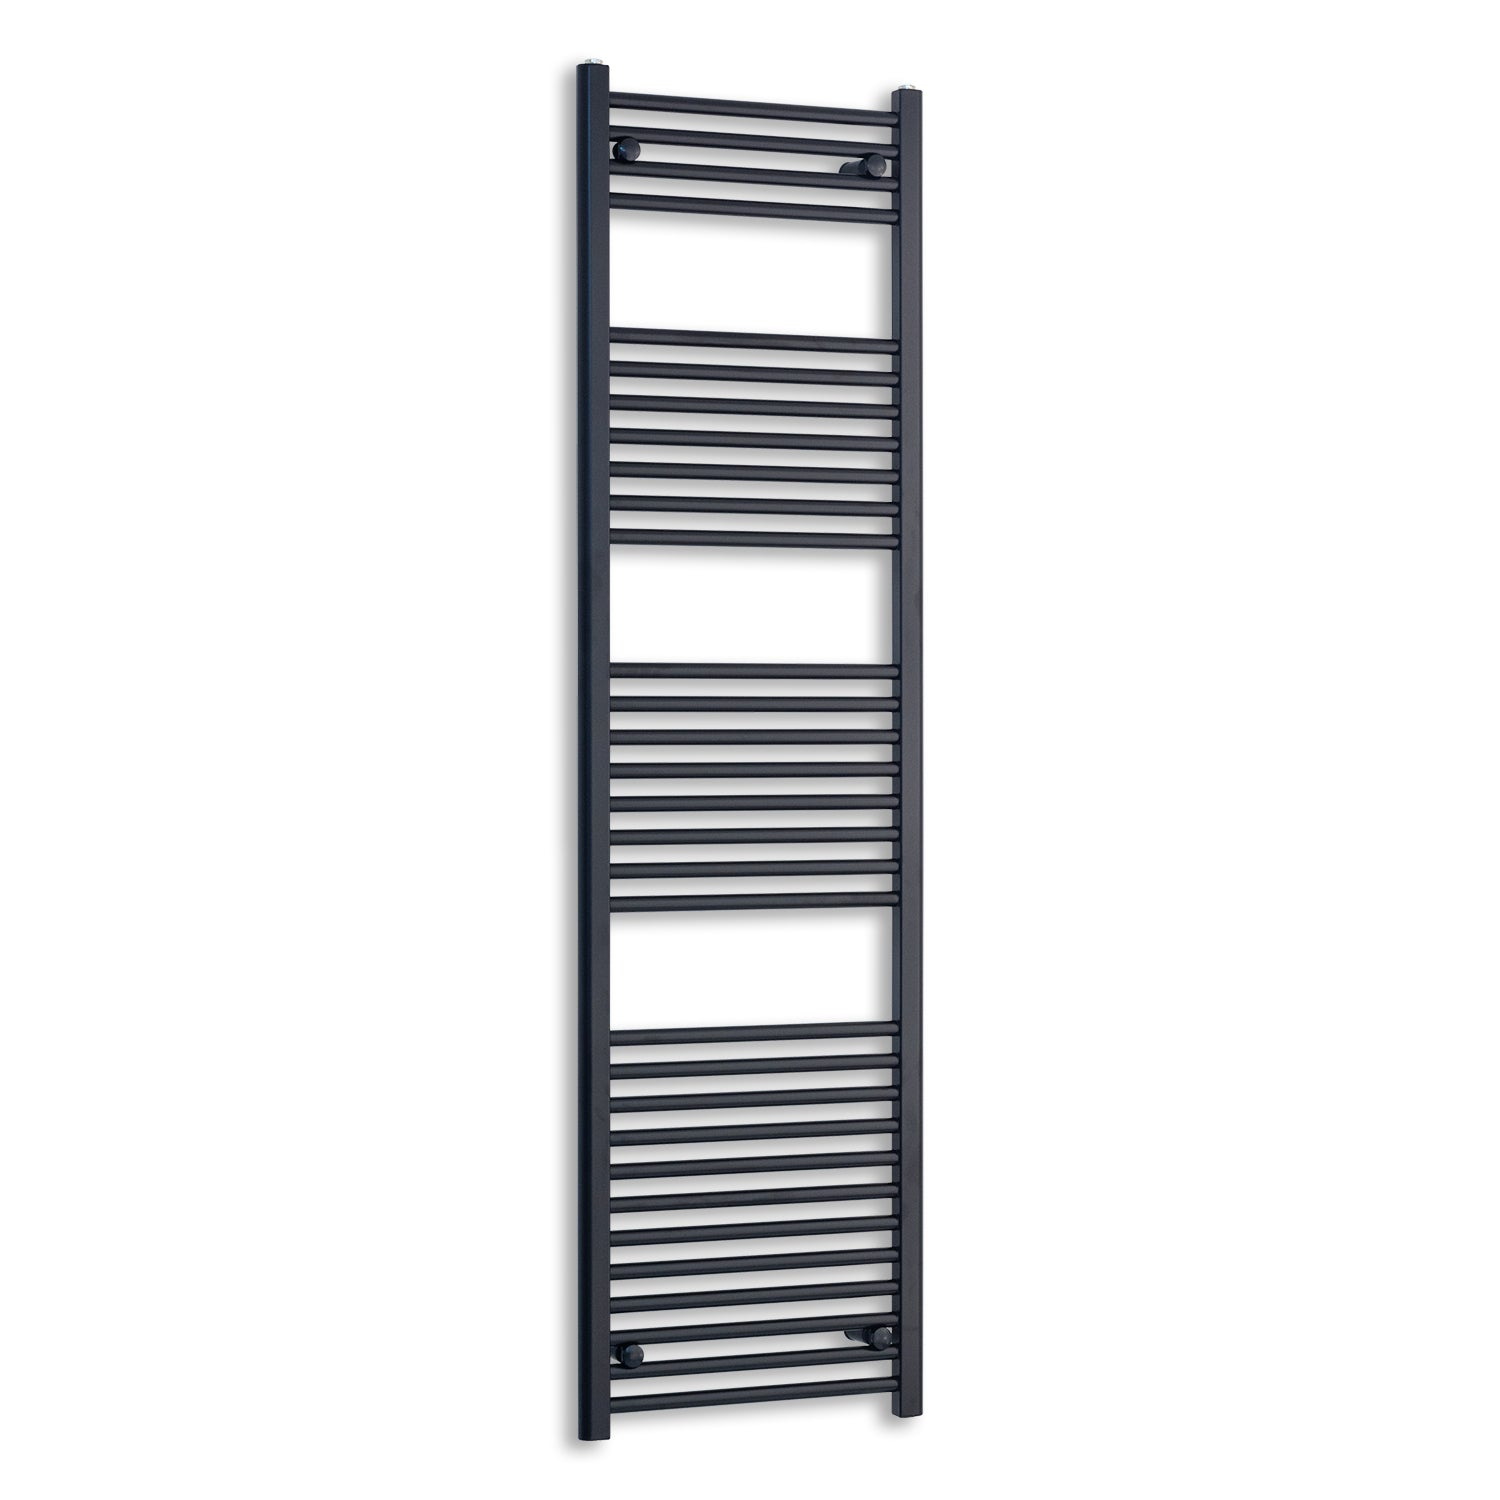 600mm Wide 1800mm High Flat Black Heated Towel Rail Radiator,Towel Rail Only